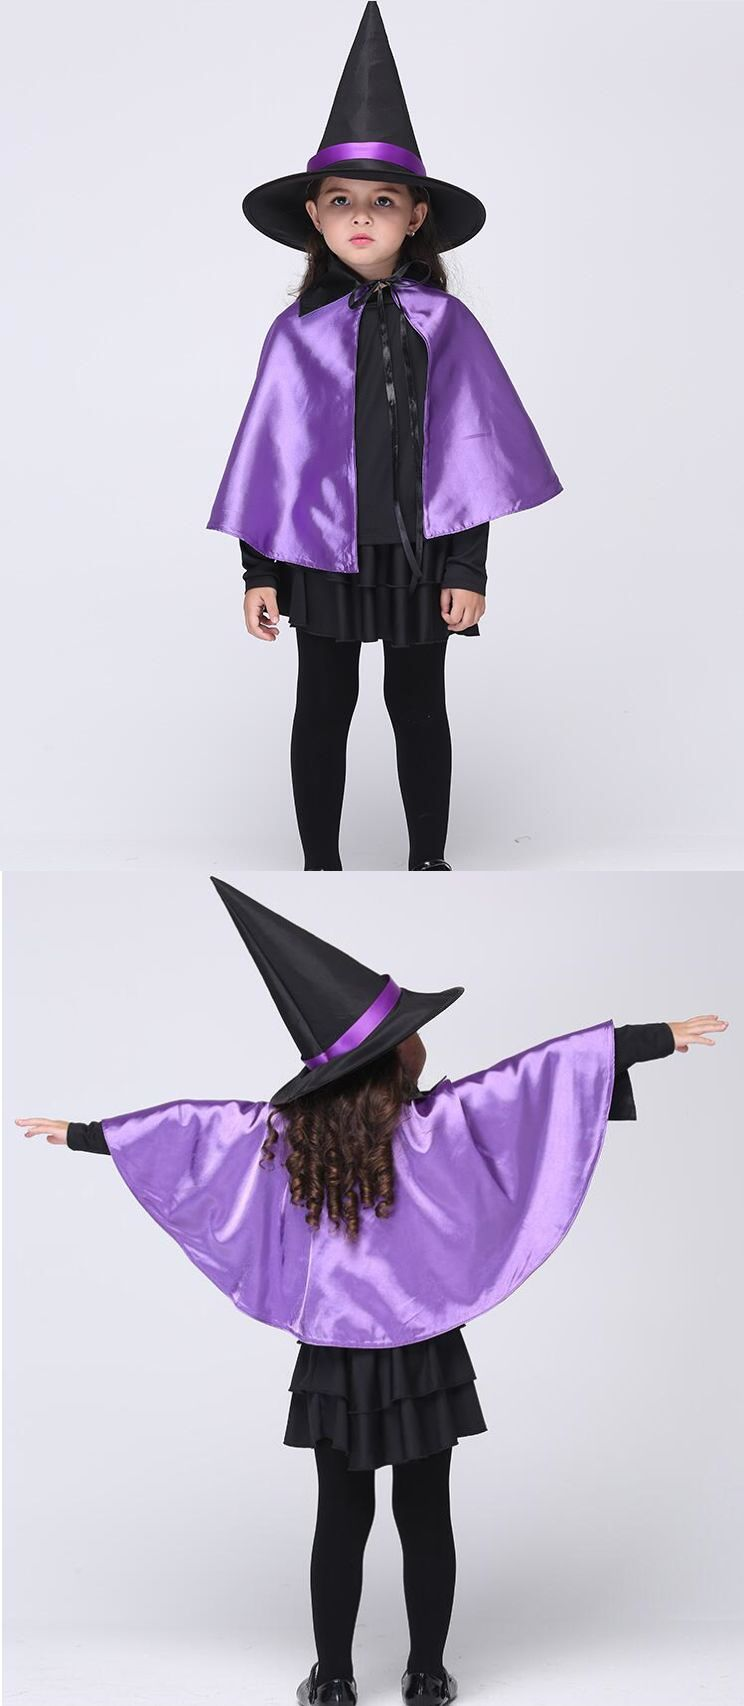 cute purple witch costumes for halloweenfunny halloween costumes for girlseasy halloween costumes & cute purple witch costumes for halloweenfunny halloween costumes ...